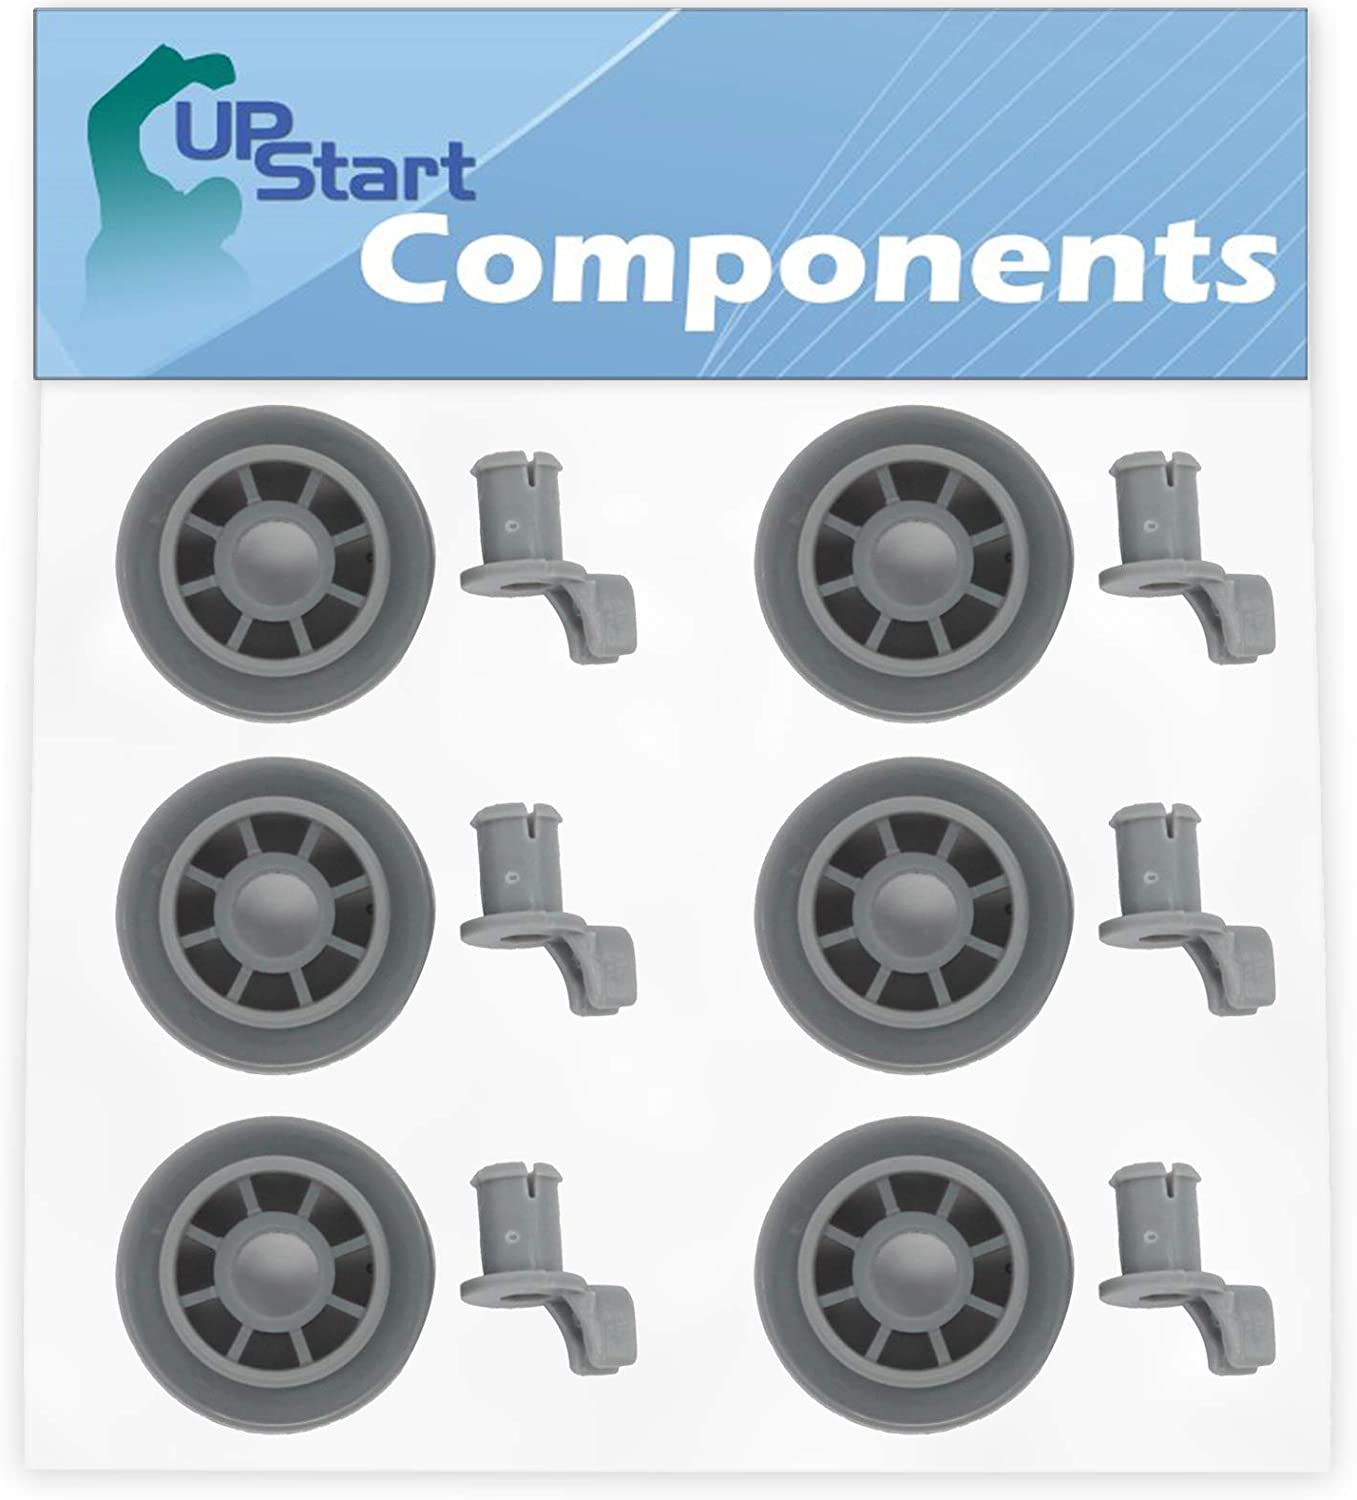 6-Pack 165314 Dishwasher Lower Dishrack Wheel Replacement for Bosch SHE4AM12UC/01 Dishwasher - Compatible with 00165314 Lower Rack Roller - UpStart Components Brand